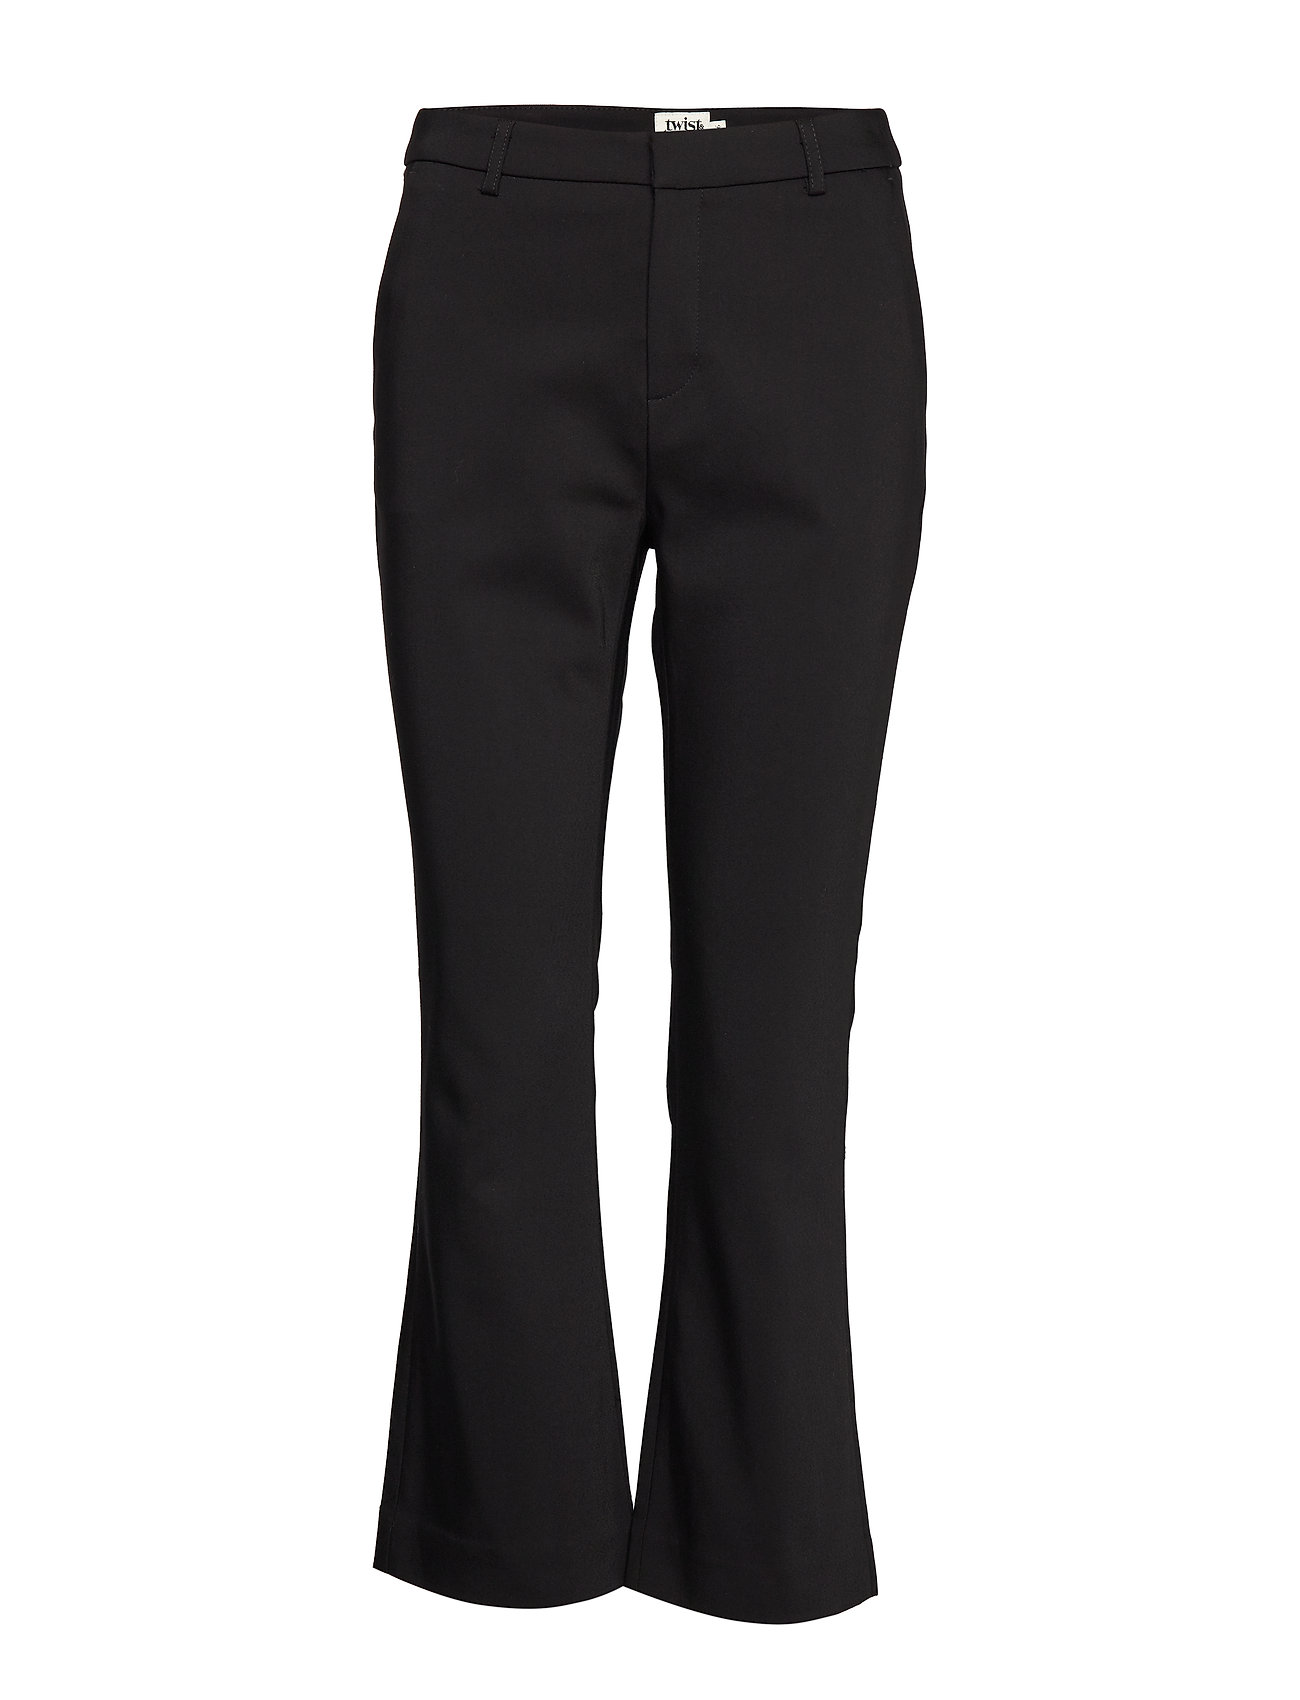 Twist & Tango Simone Trousers - BLACK